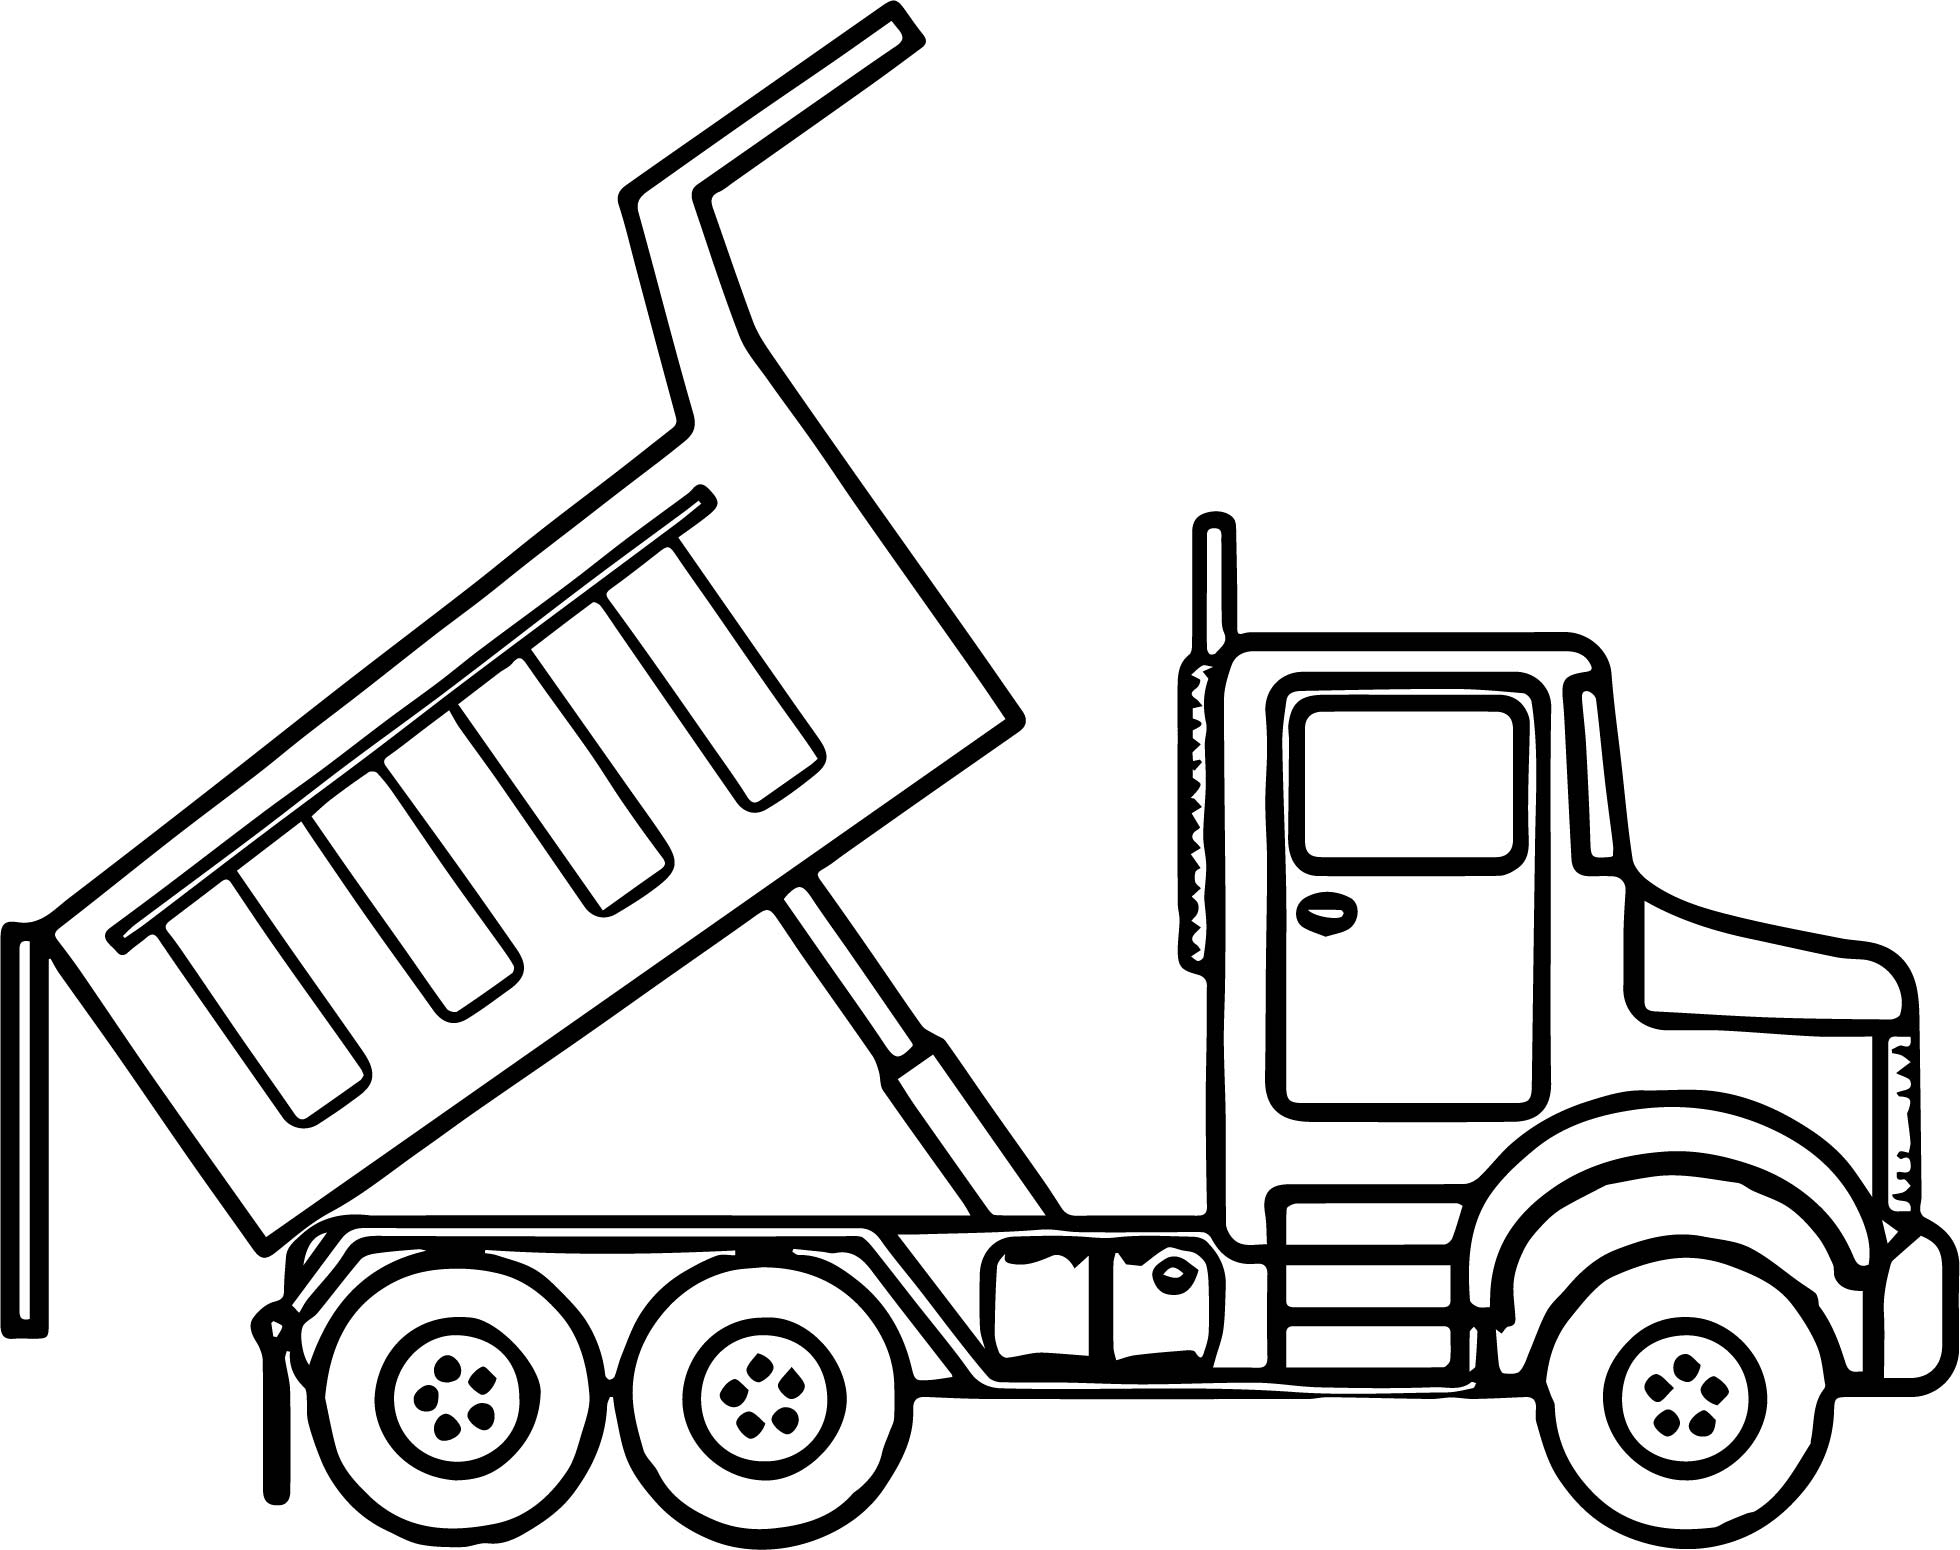 colouring in trucks truck coloring pages free download on clipartmag colouring trucks in